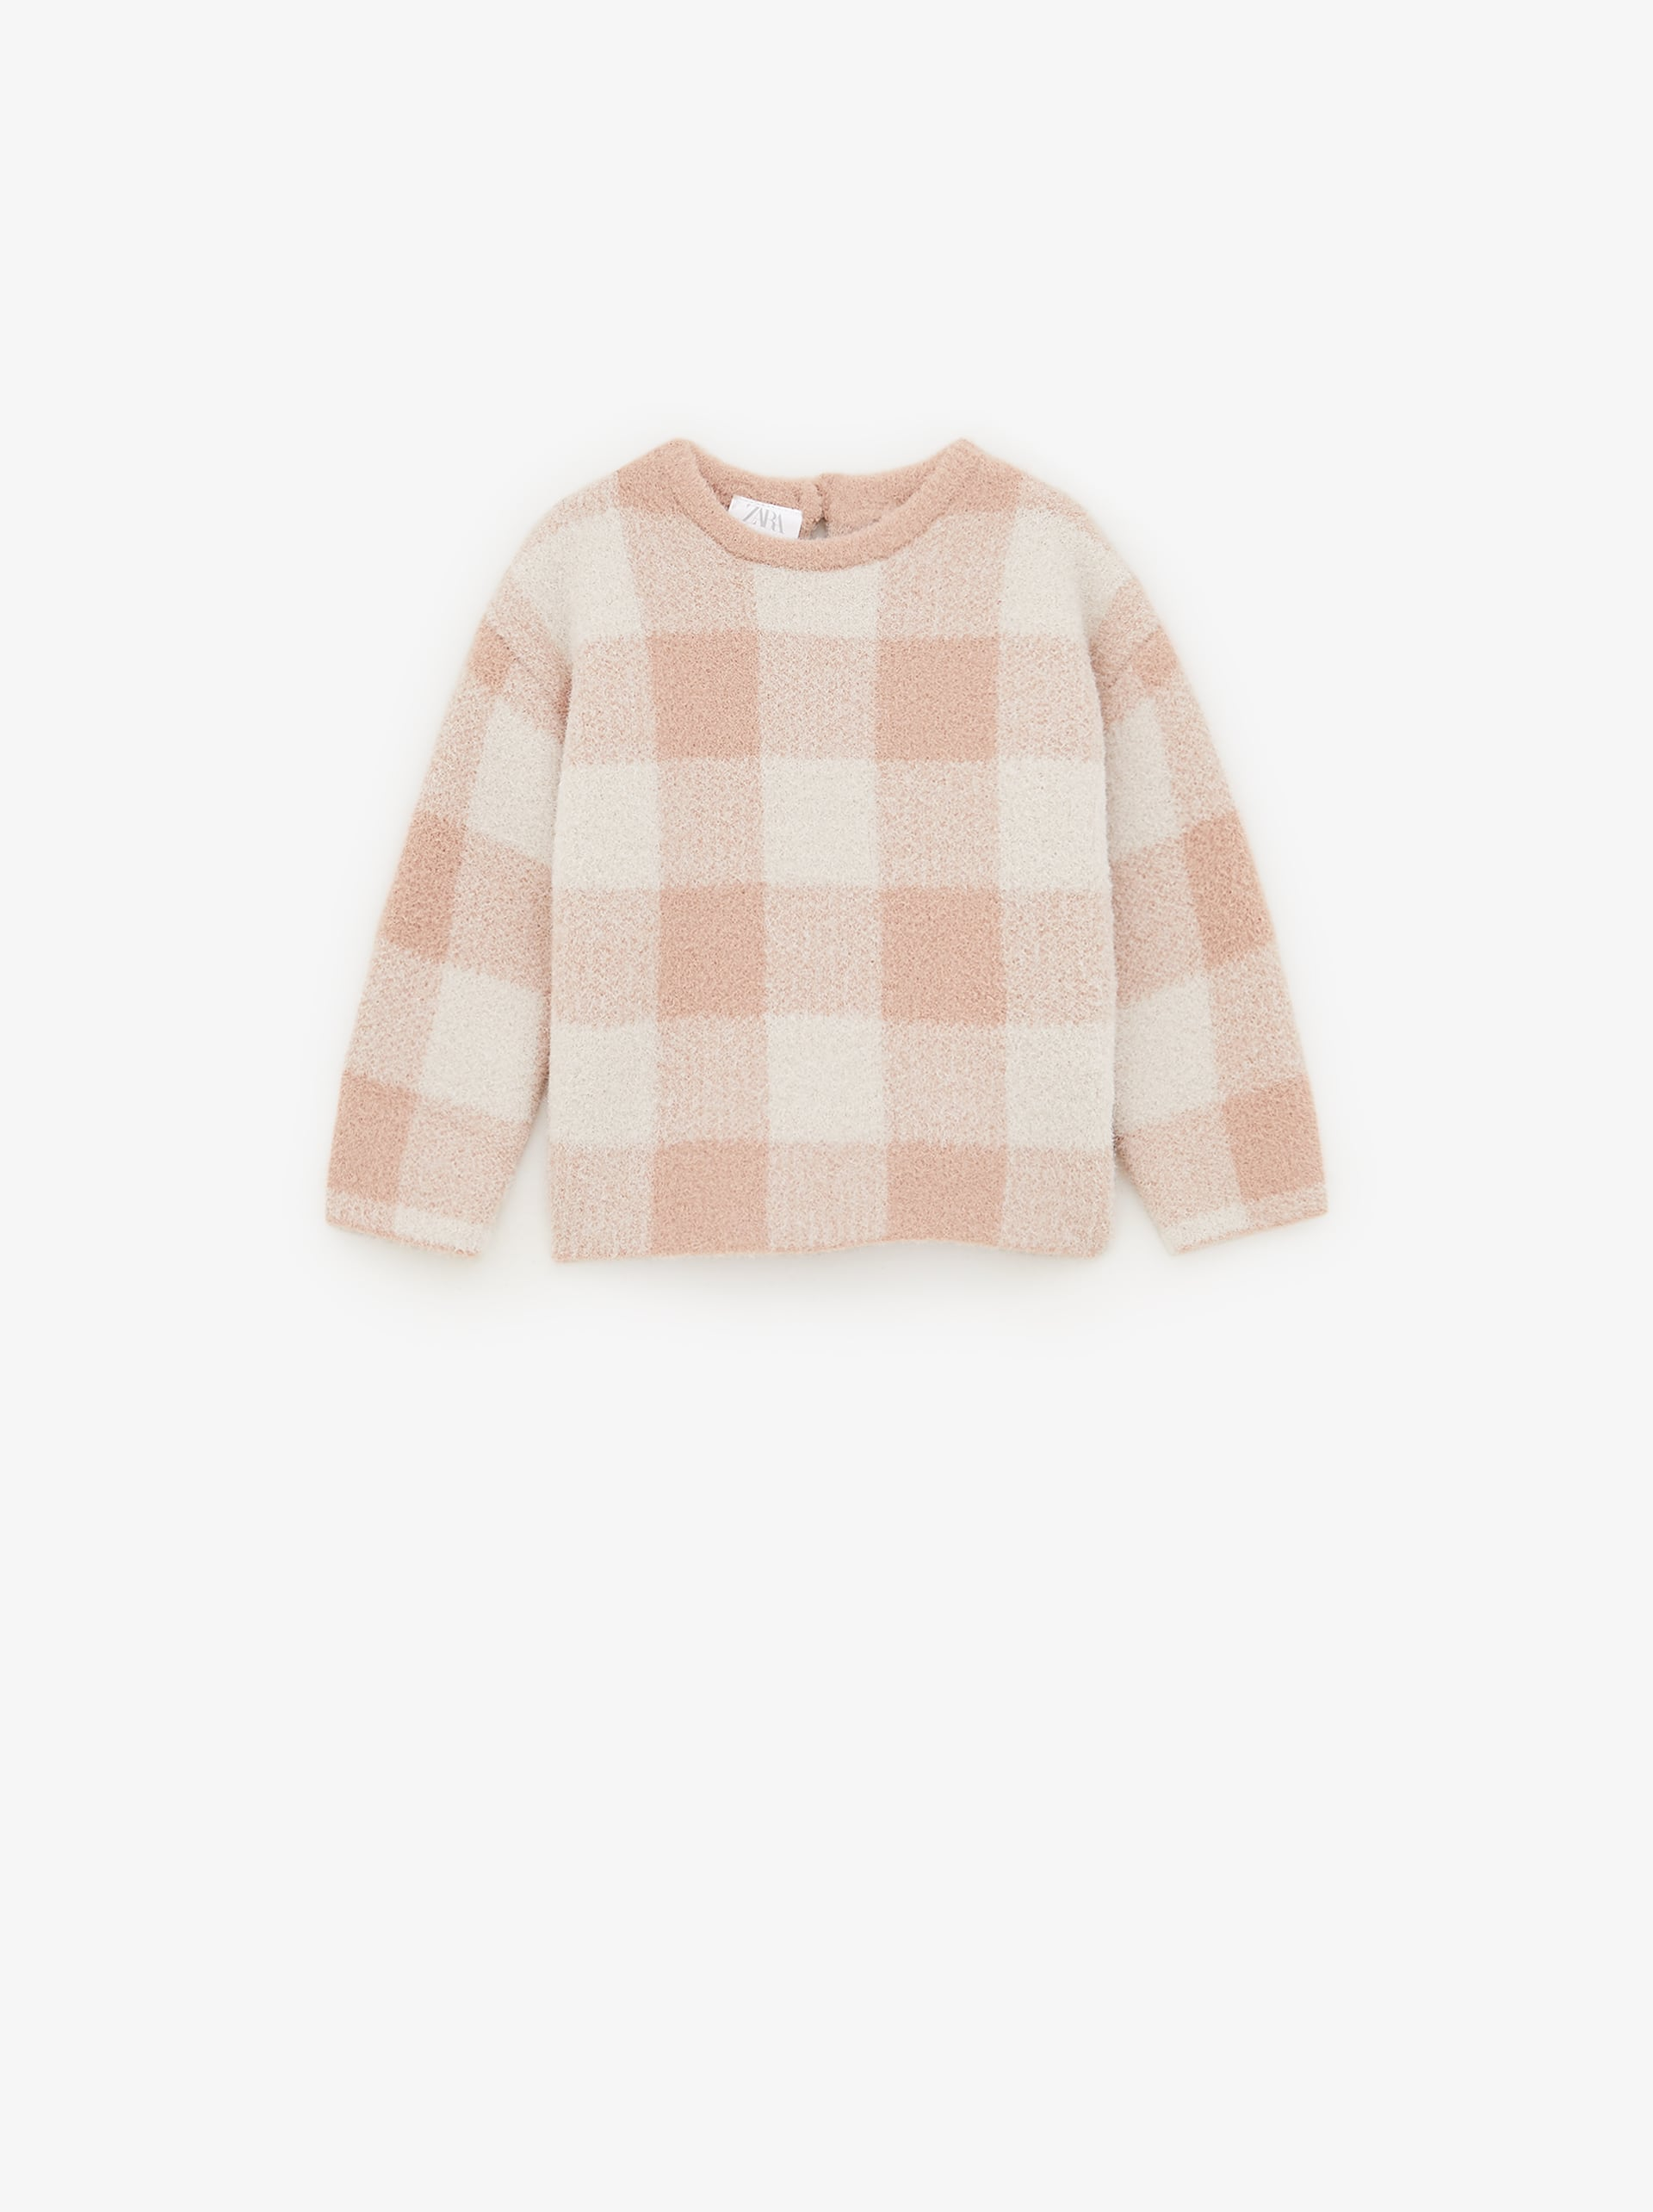 Plaid Knit Sweater by Zara